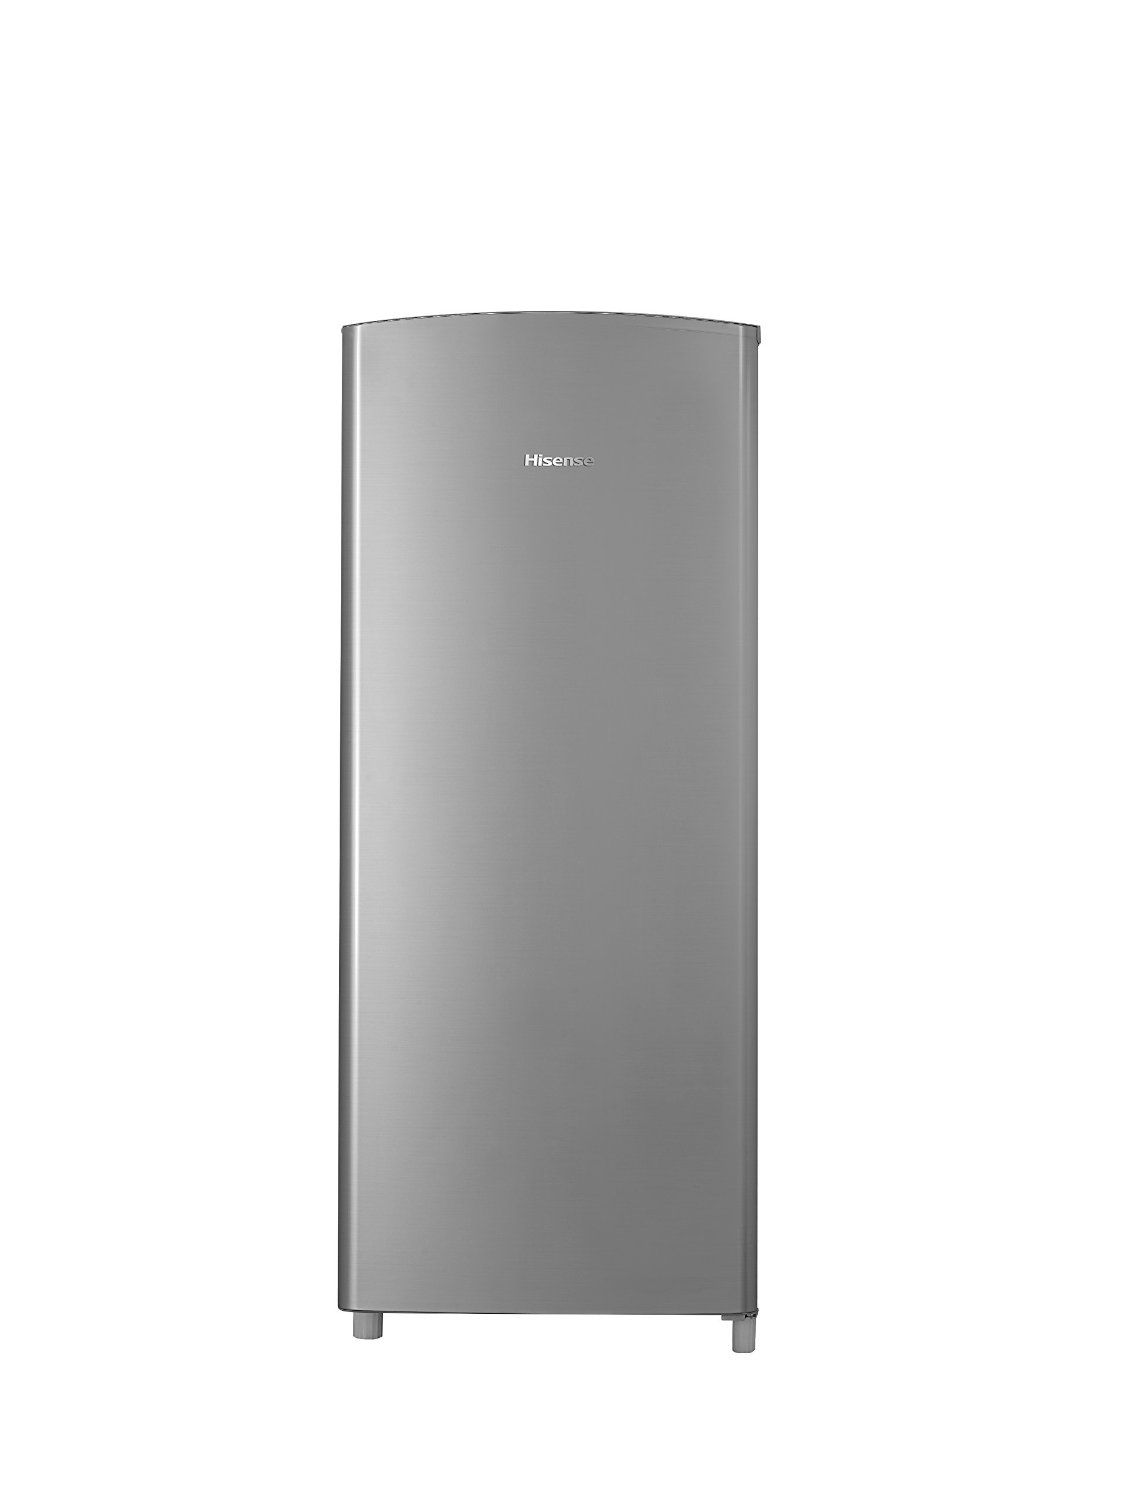 Hisense Rr63d6ase Refrigerator With Single Door And Freezer 6 3 Cu Ft Stainless Silver This Is An Amazon Affiliate Li Single Doors Refrigerator Freezer